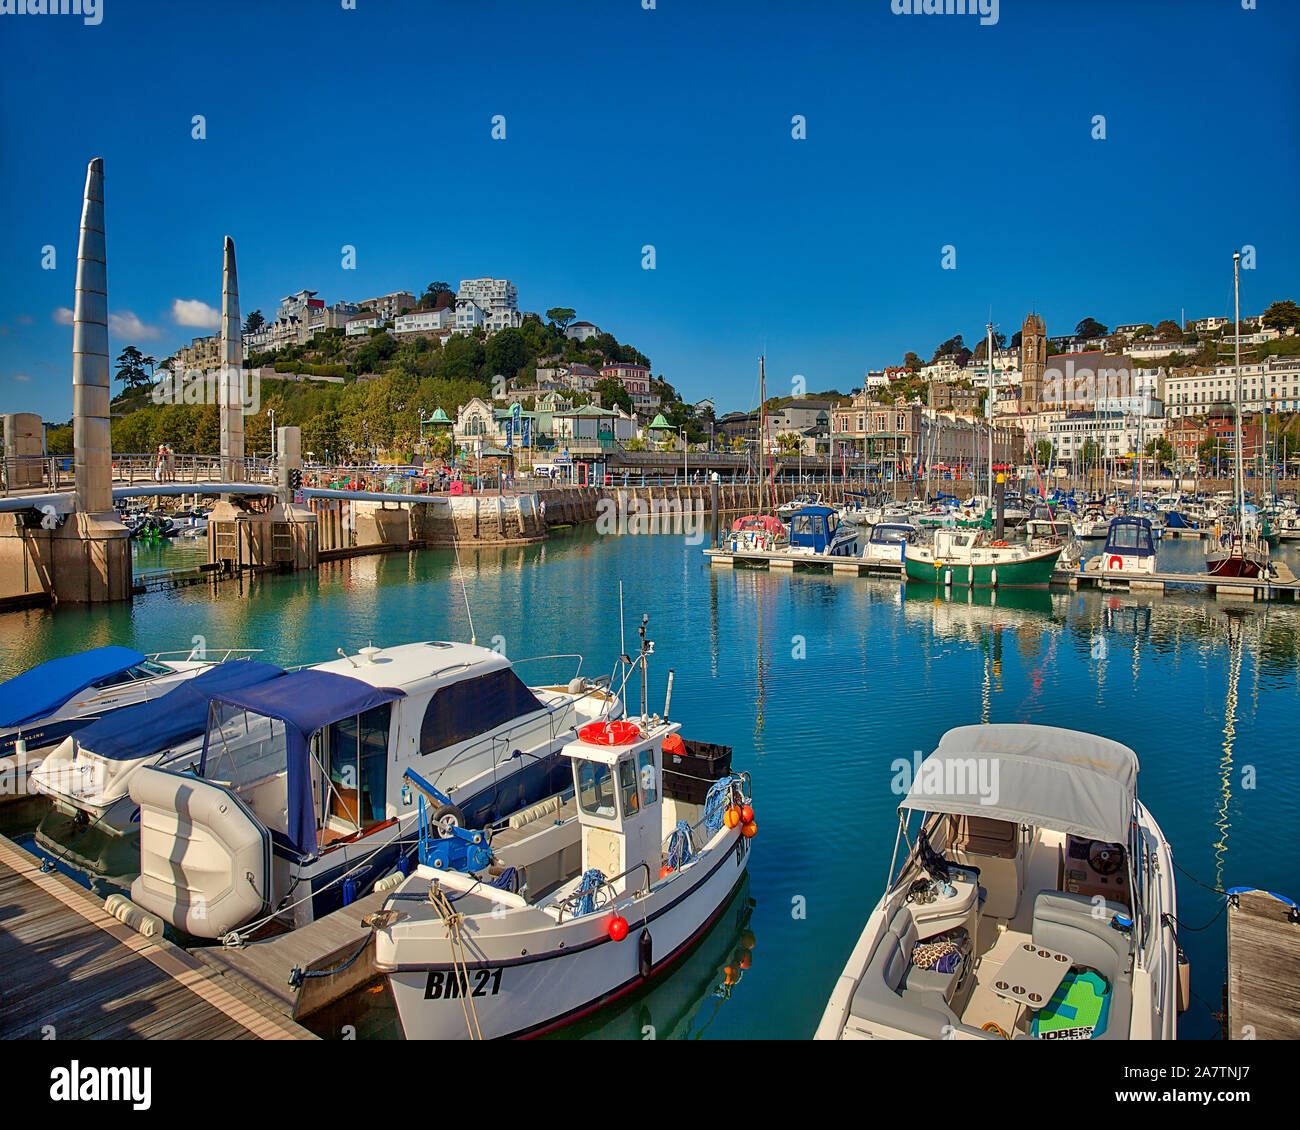 GB - DEVON: Torquay Harbour and Town  (HDR-Image) Stock Photo